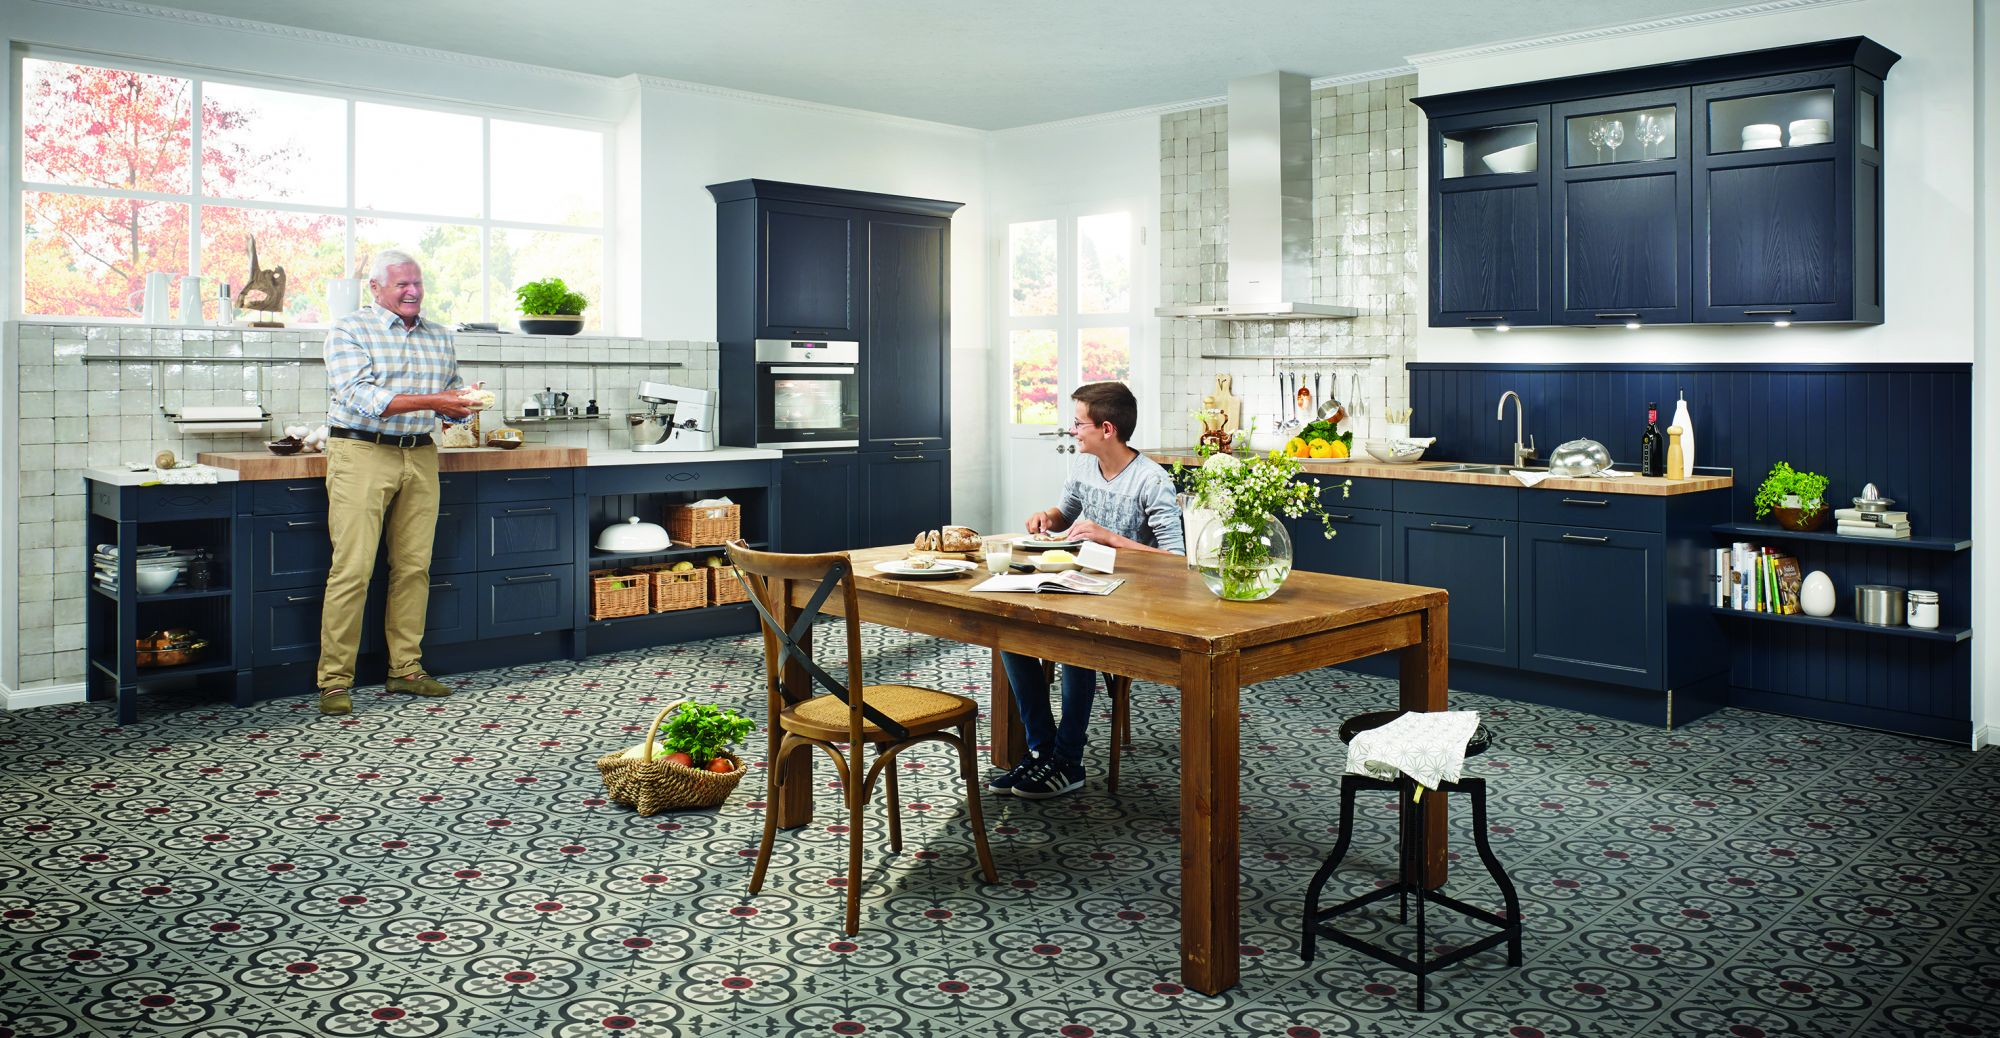 Charmant Crowthorne Kitchens